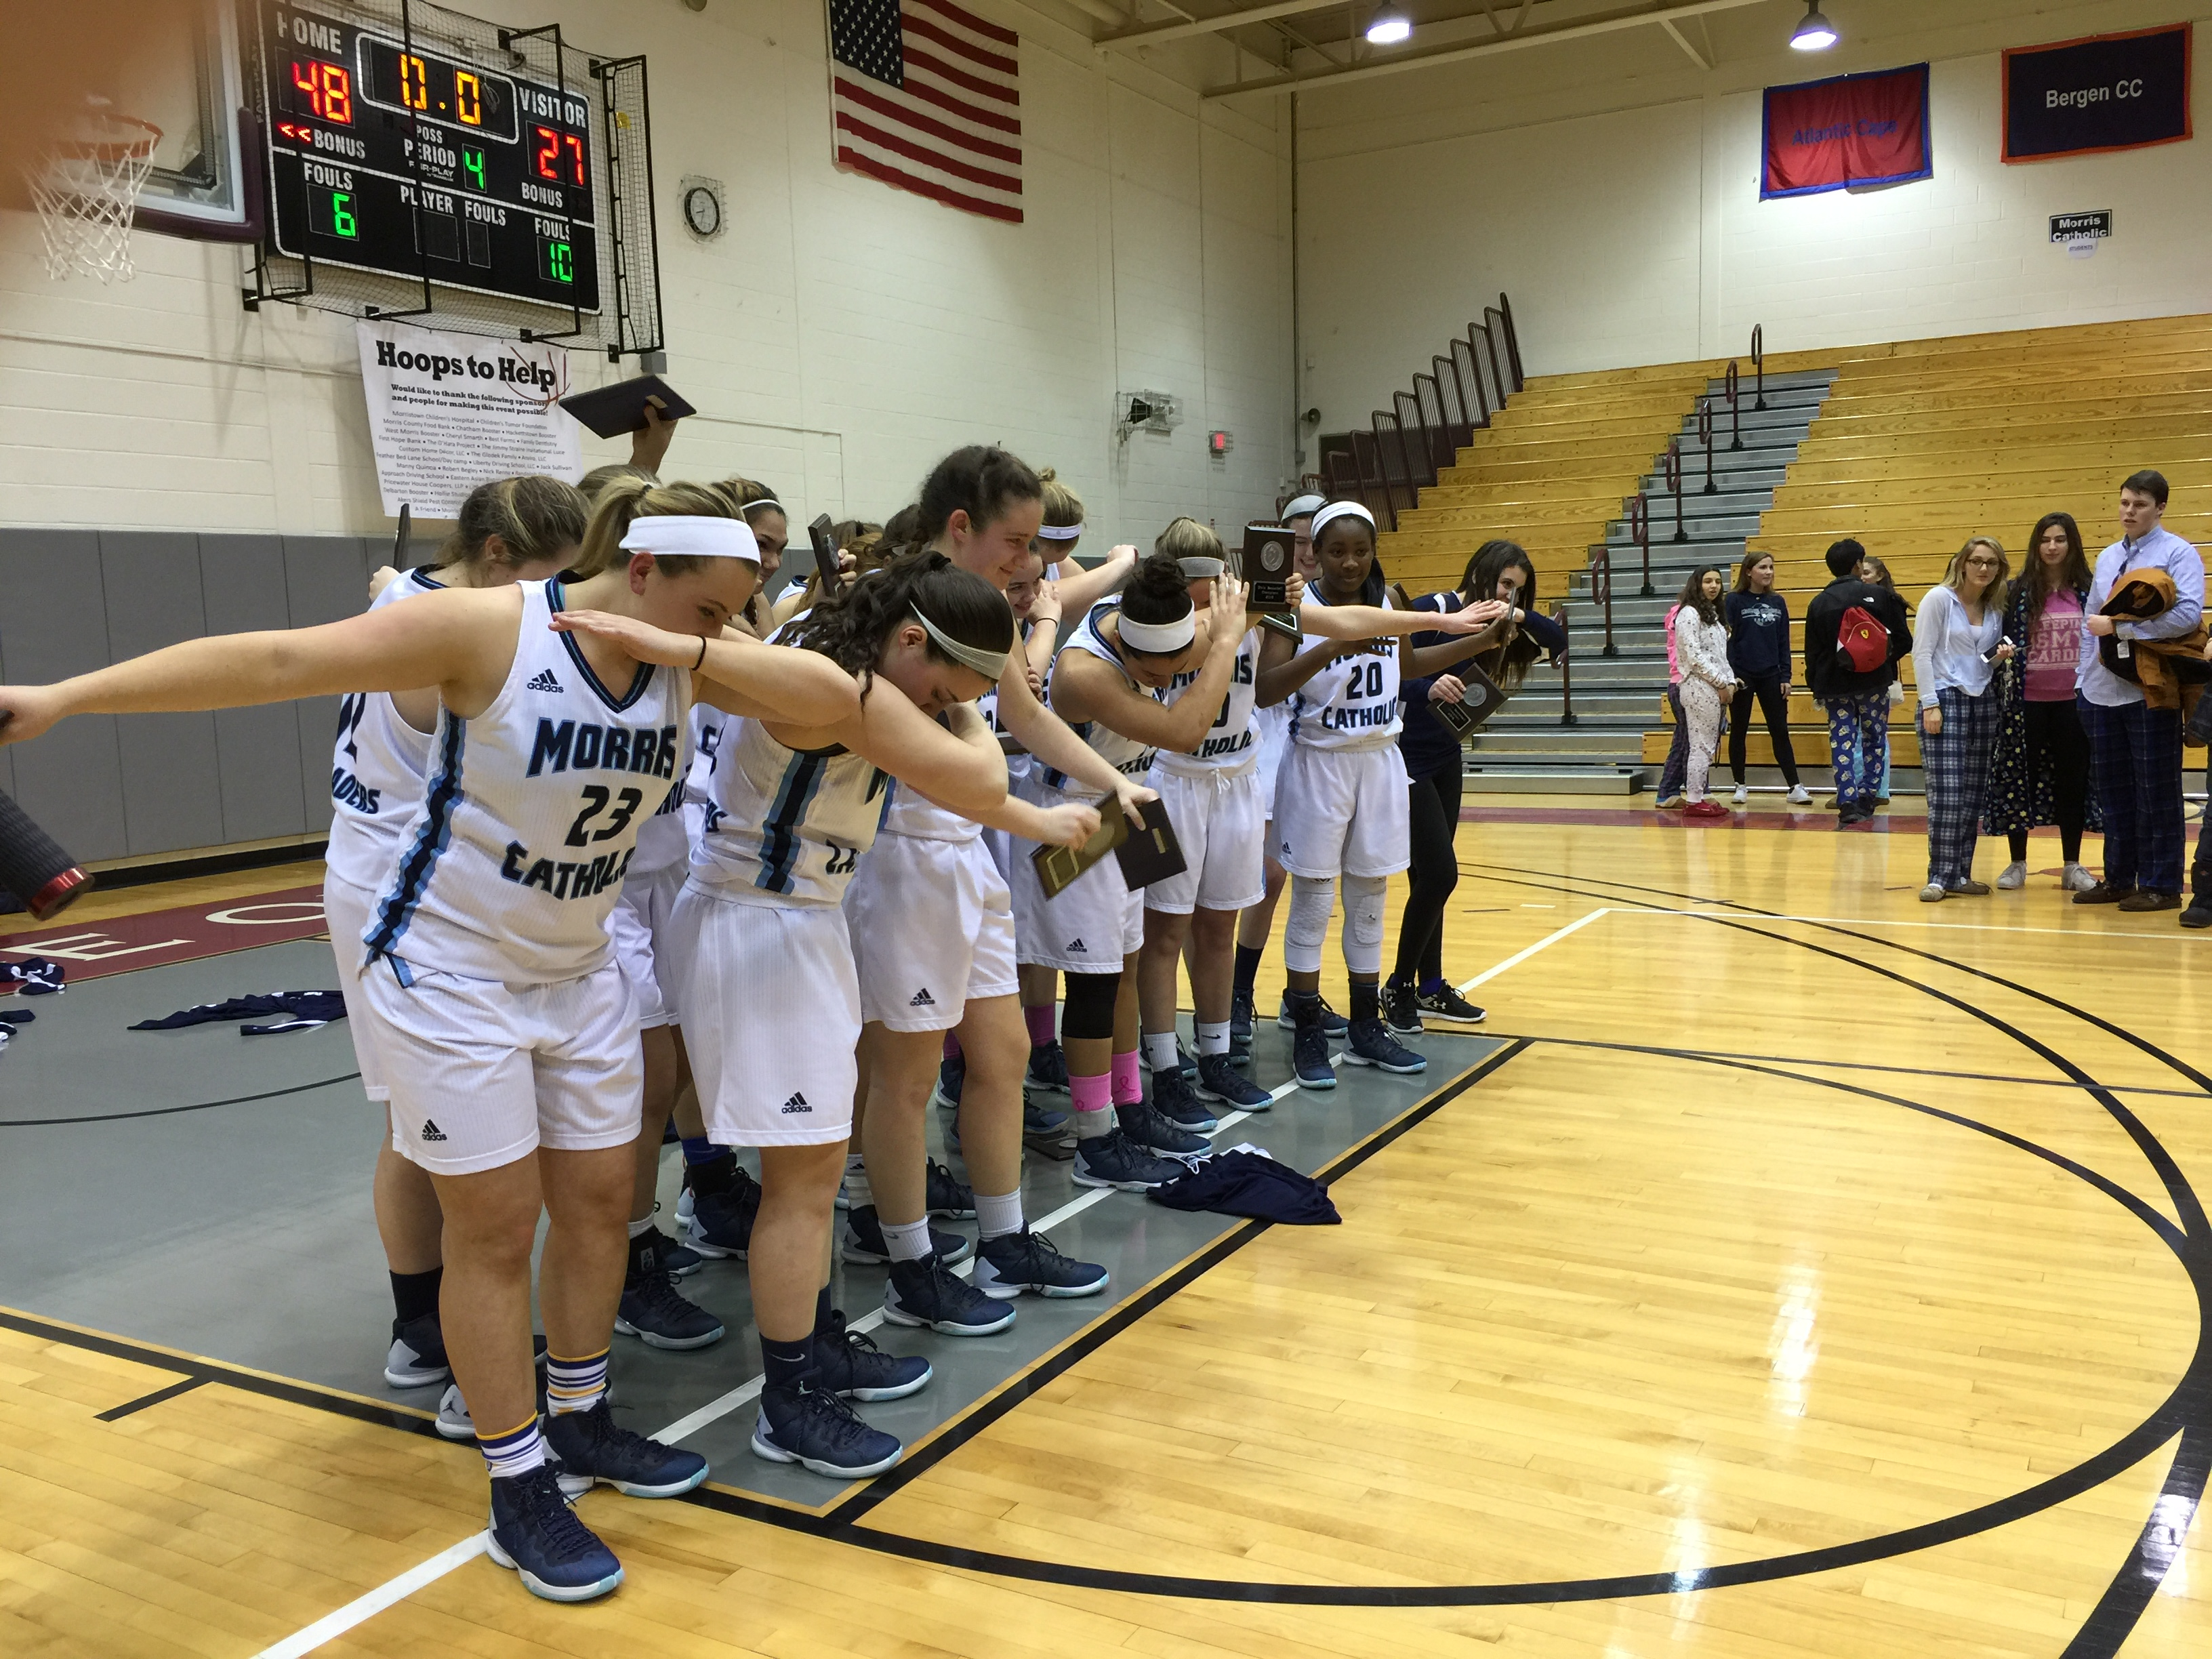 denville single catholic girls Get the latest morris catholic (nj) high school girls basketball news, rankings, schedules, stats, scores, results, athletes info, and more at pennlivecom.